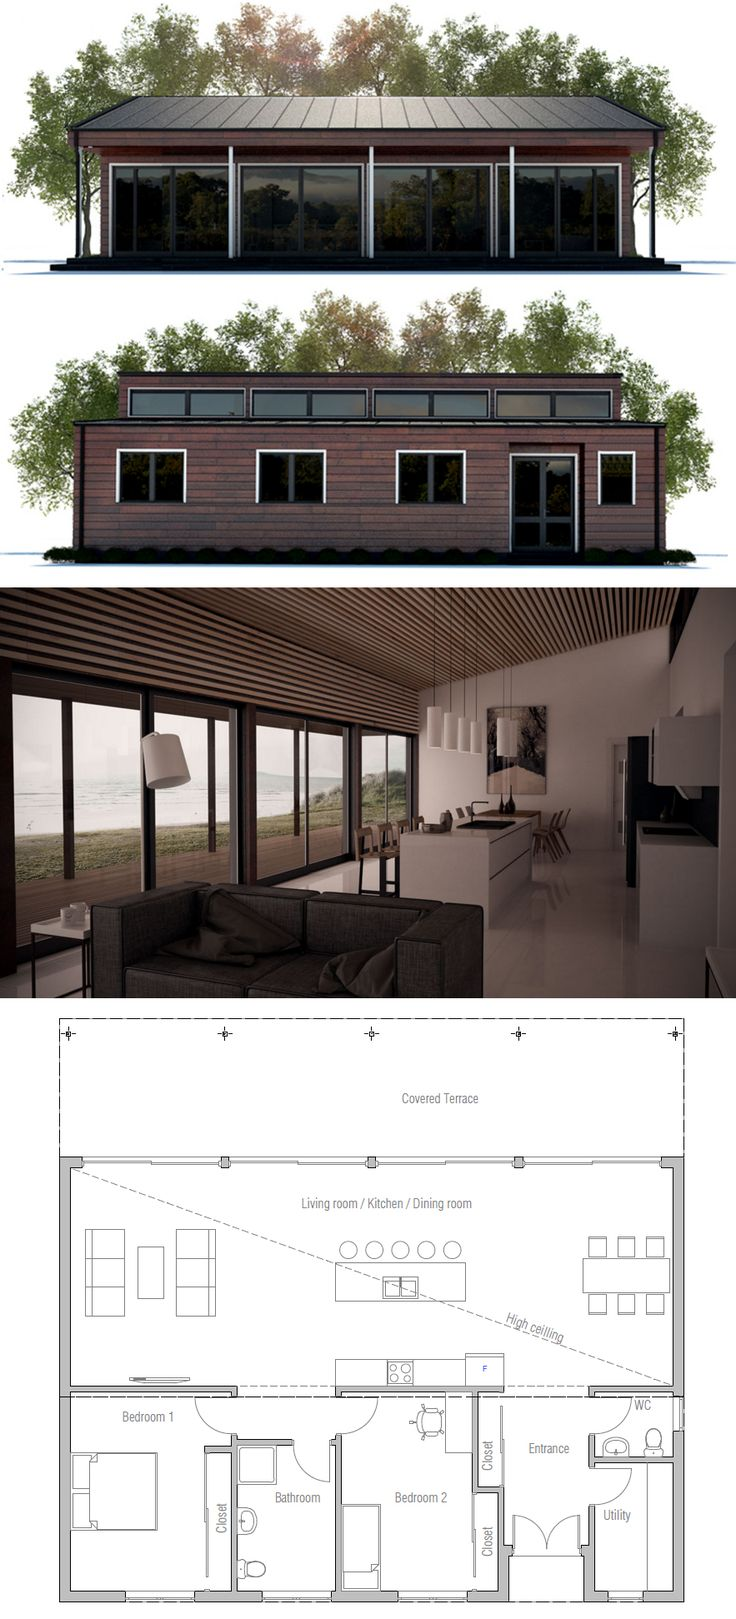 Find this Pin and more on Two Bedroom House Plans by concepthomes. 33 best Two Bedroom House Plans images on Pinterest